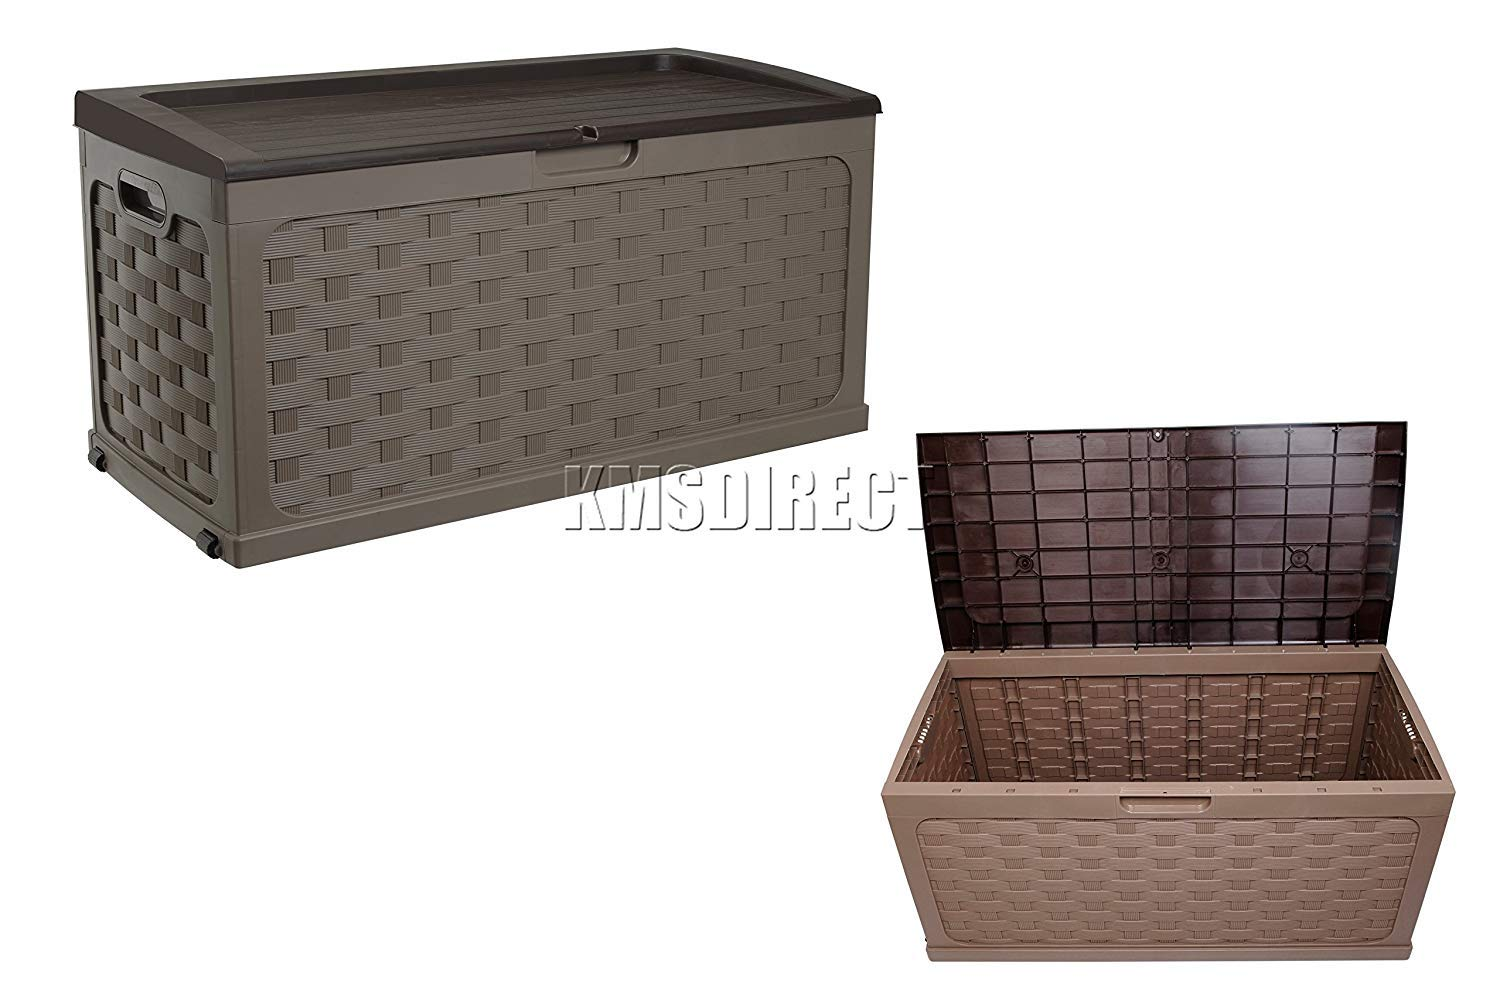 Amazon.com: Plastic Garden Storage Box with Sit on Lid Cushion Box Outdoor Storage Wicker Deck Box Rattan Design - Color Brown: Home & Kitchen